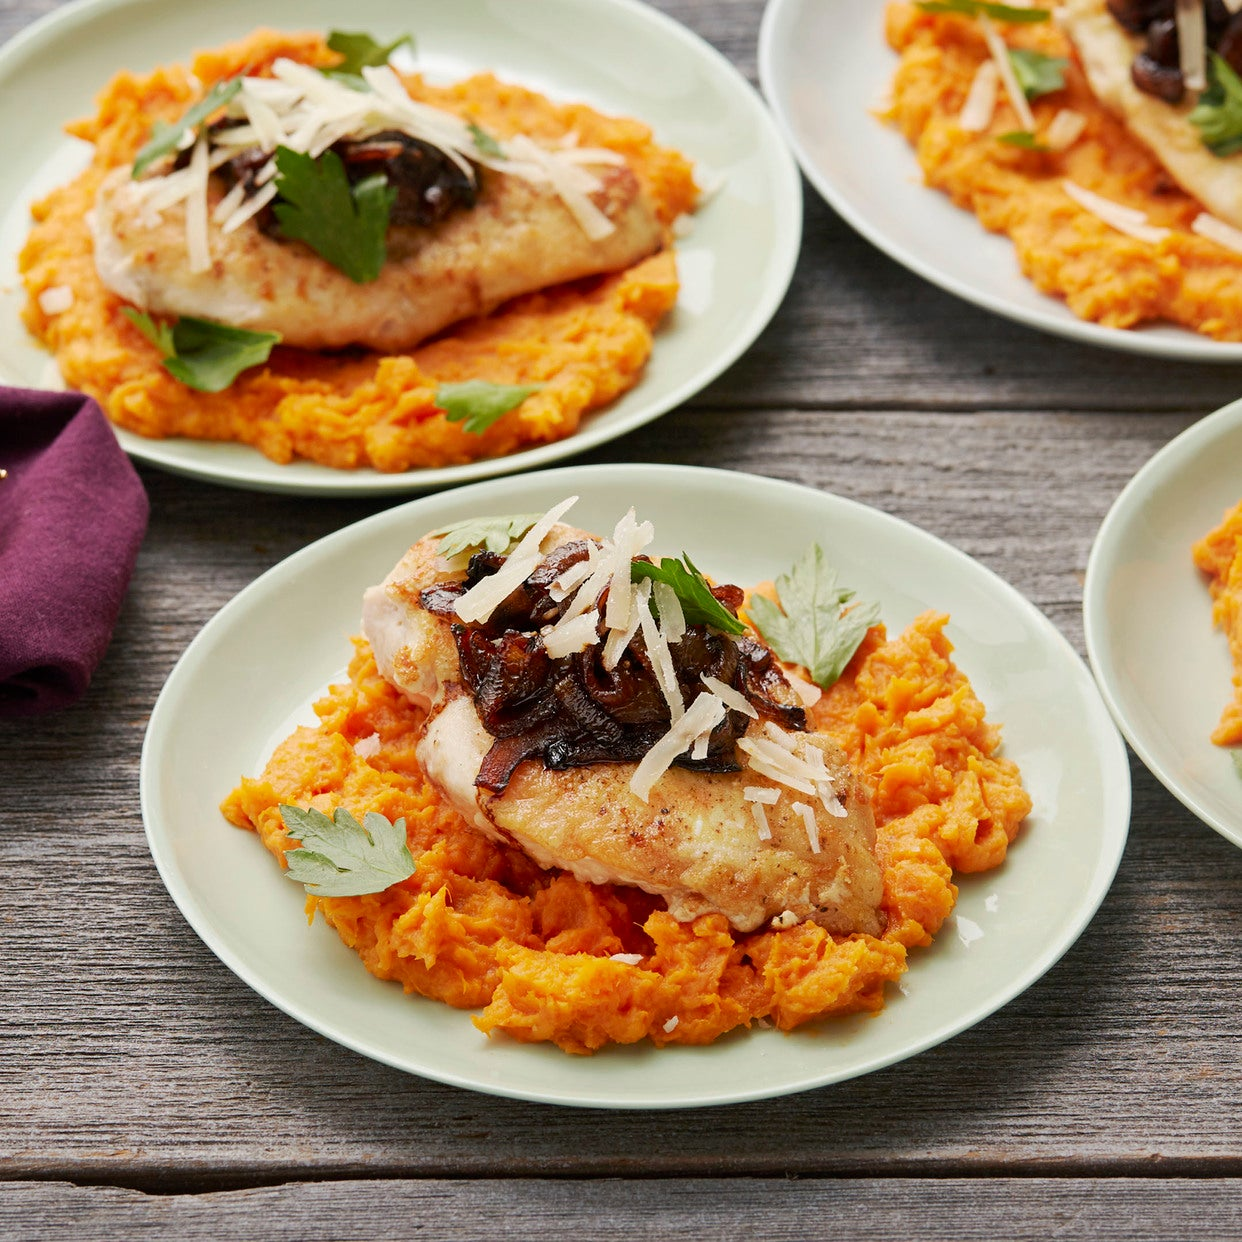 Seared Chicken & Mashed Sweet Potatoes with Balsamic-Caramelized Onion